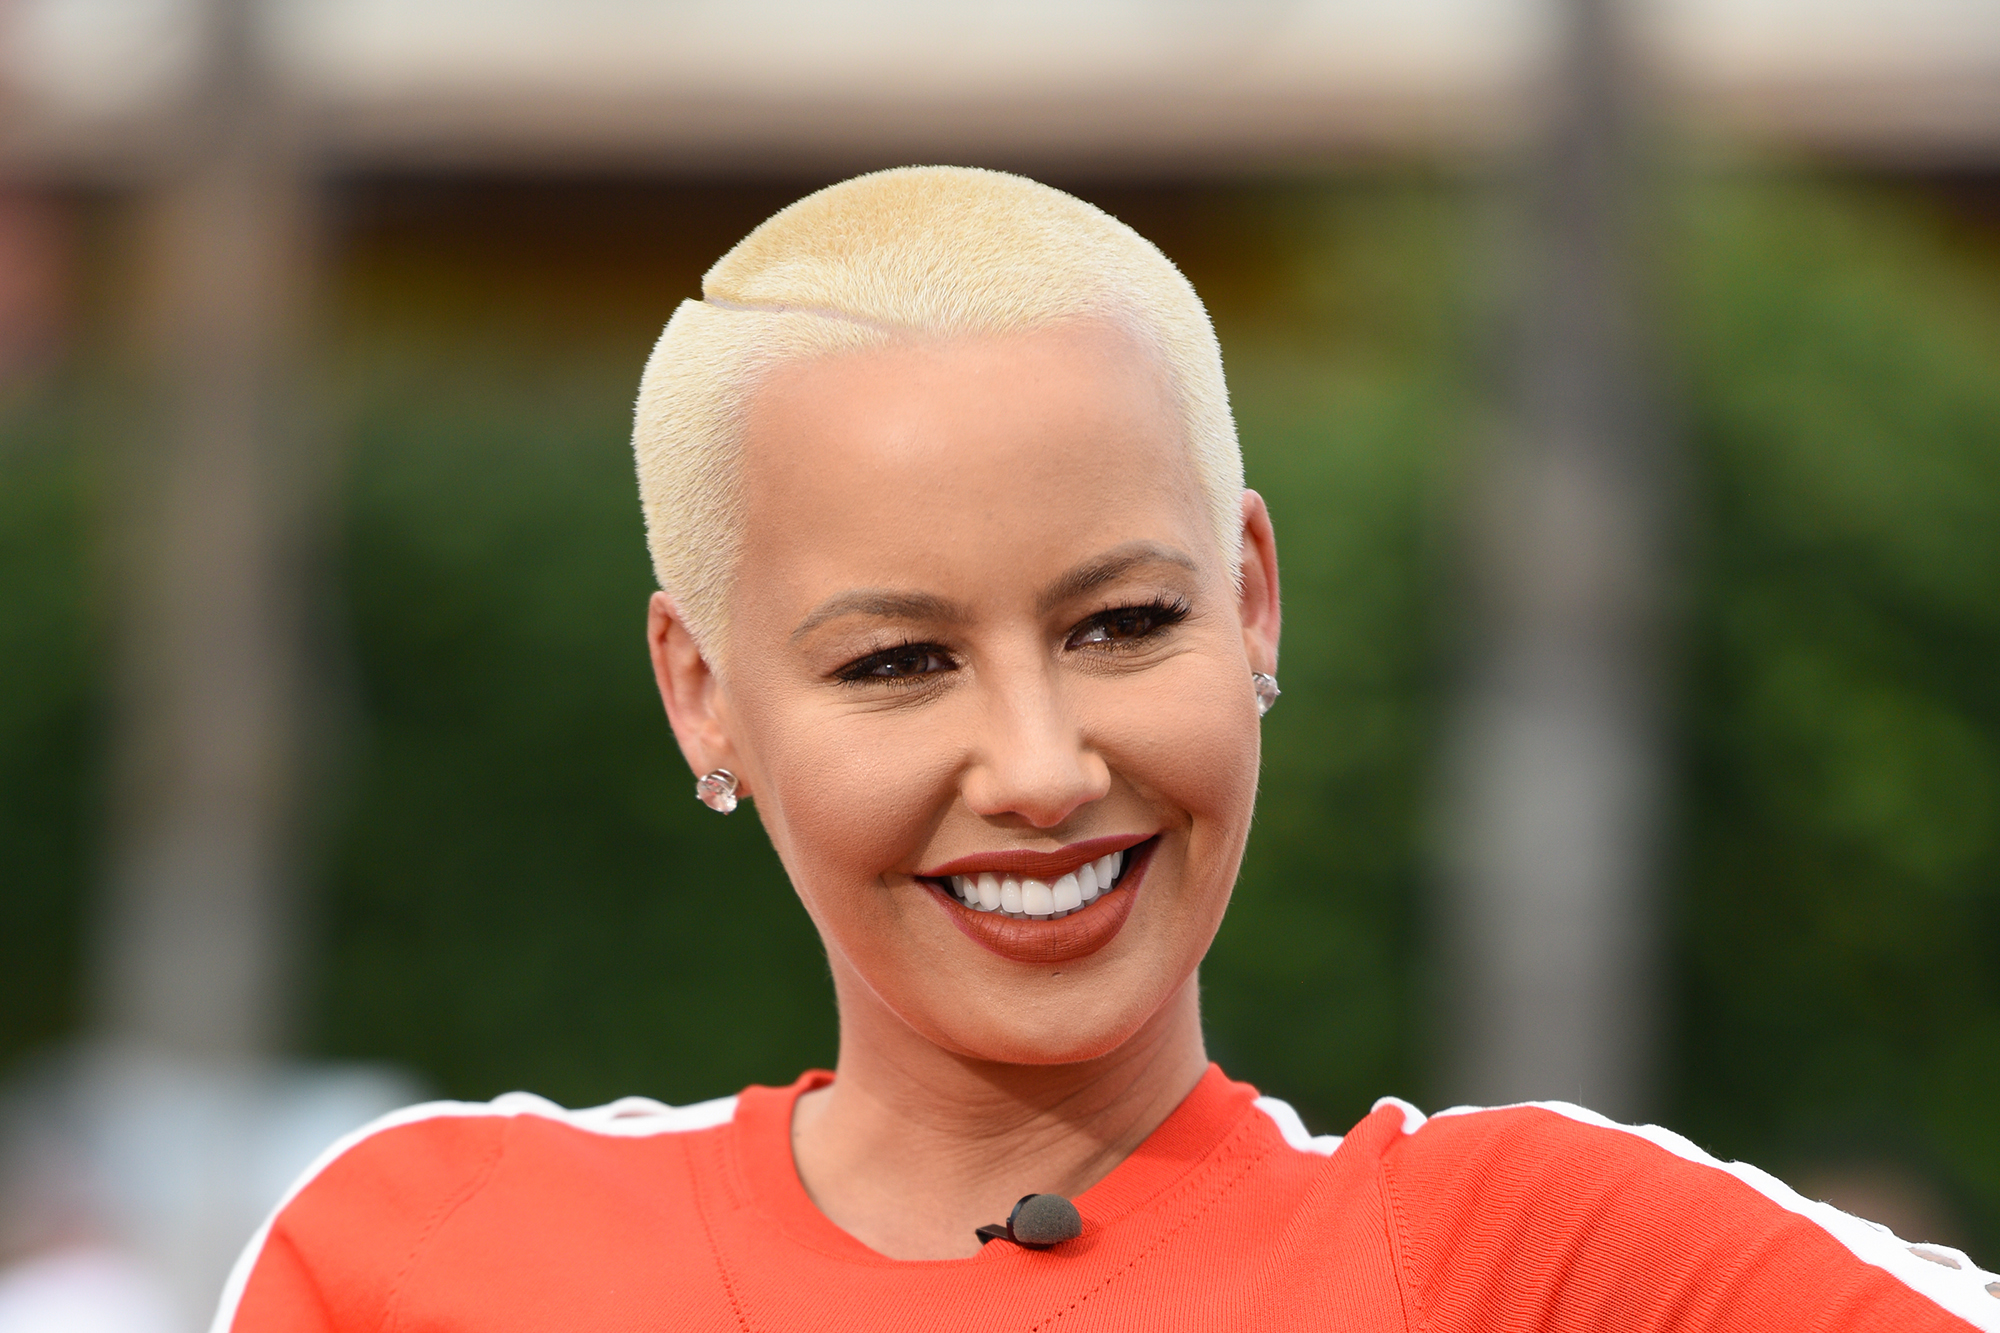 Amber Rose visits  Extra  at Universal Studios Hollywood on June 13, 2016 in Universal City, California.  (Photo by Noel Vasquez/Getty Images)